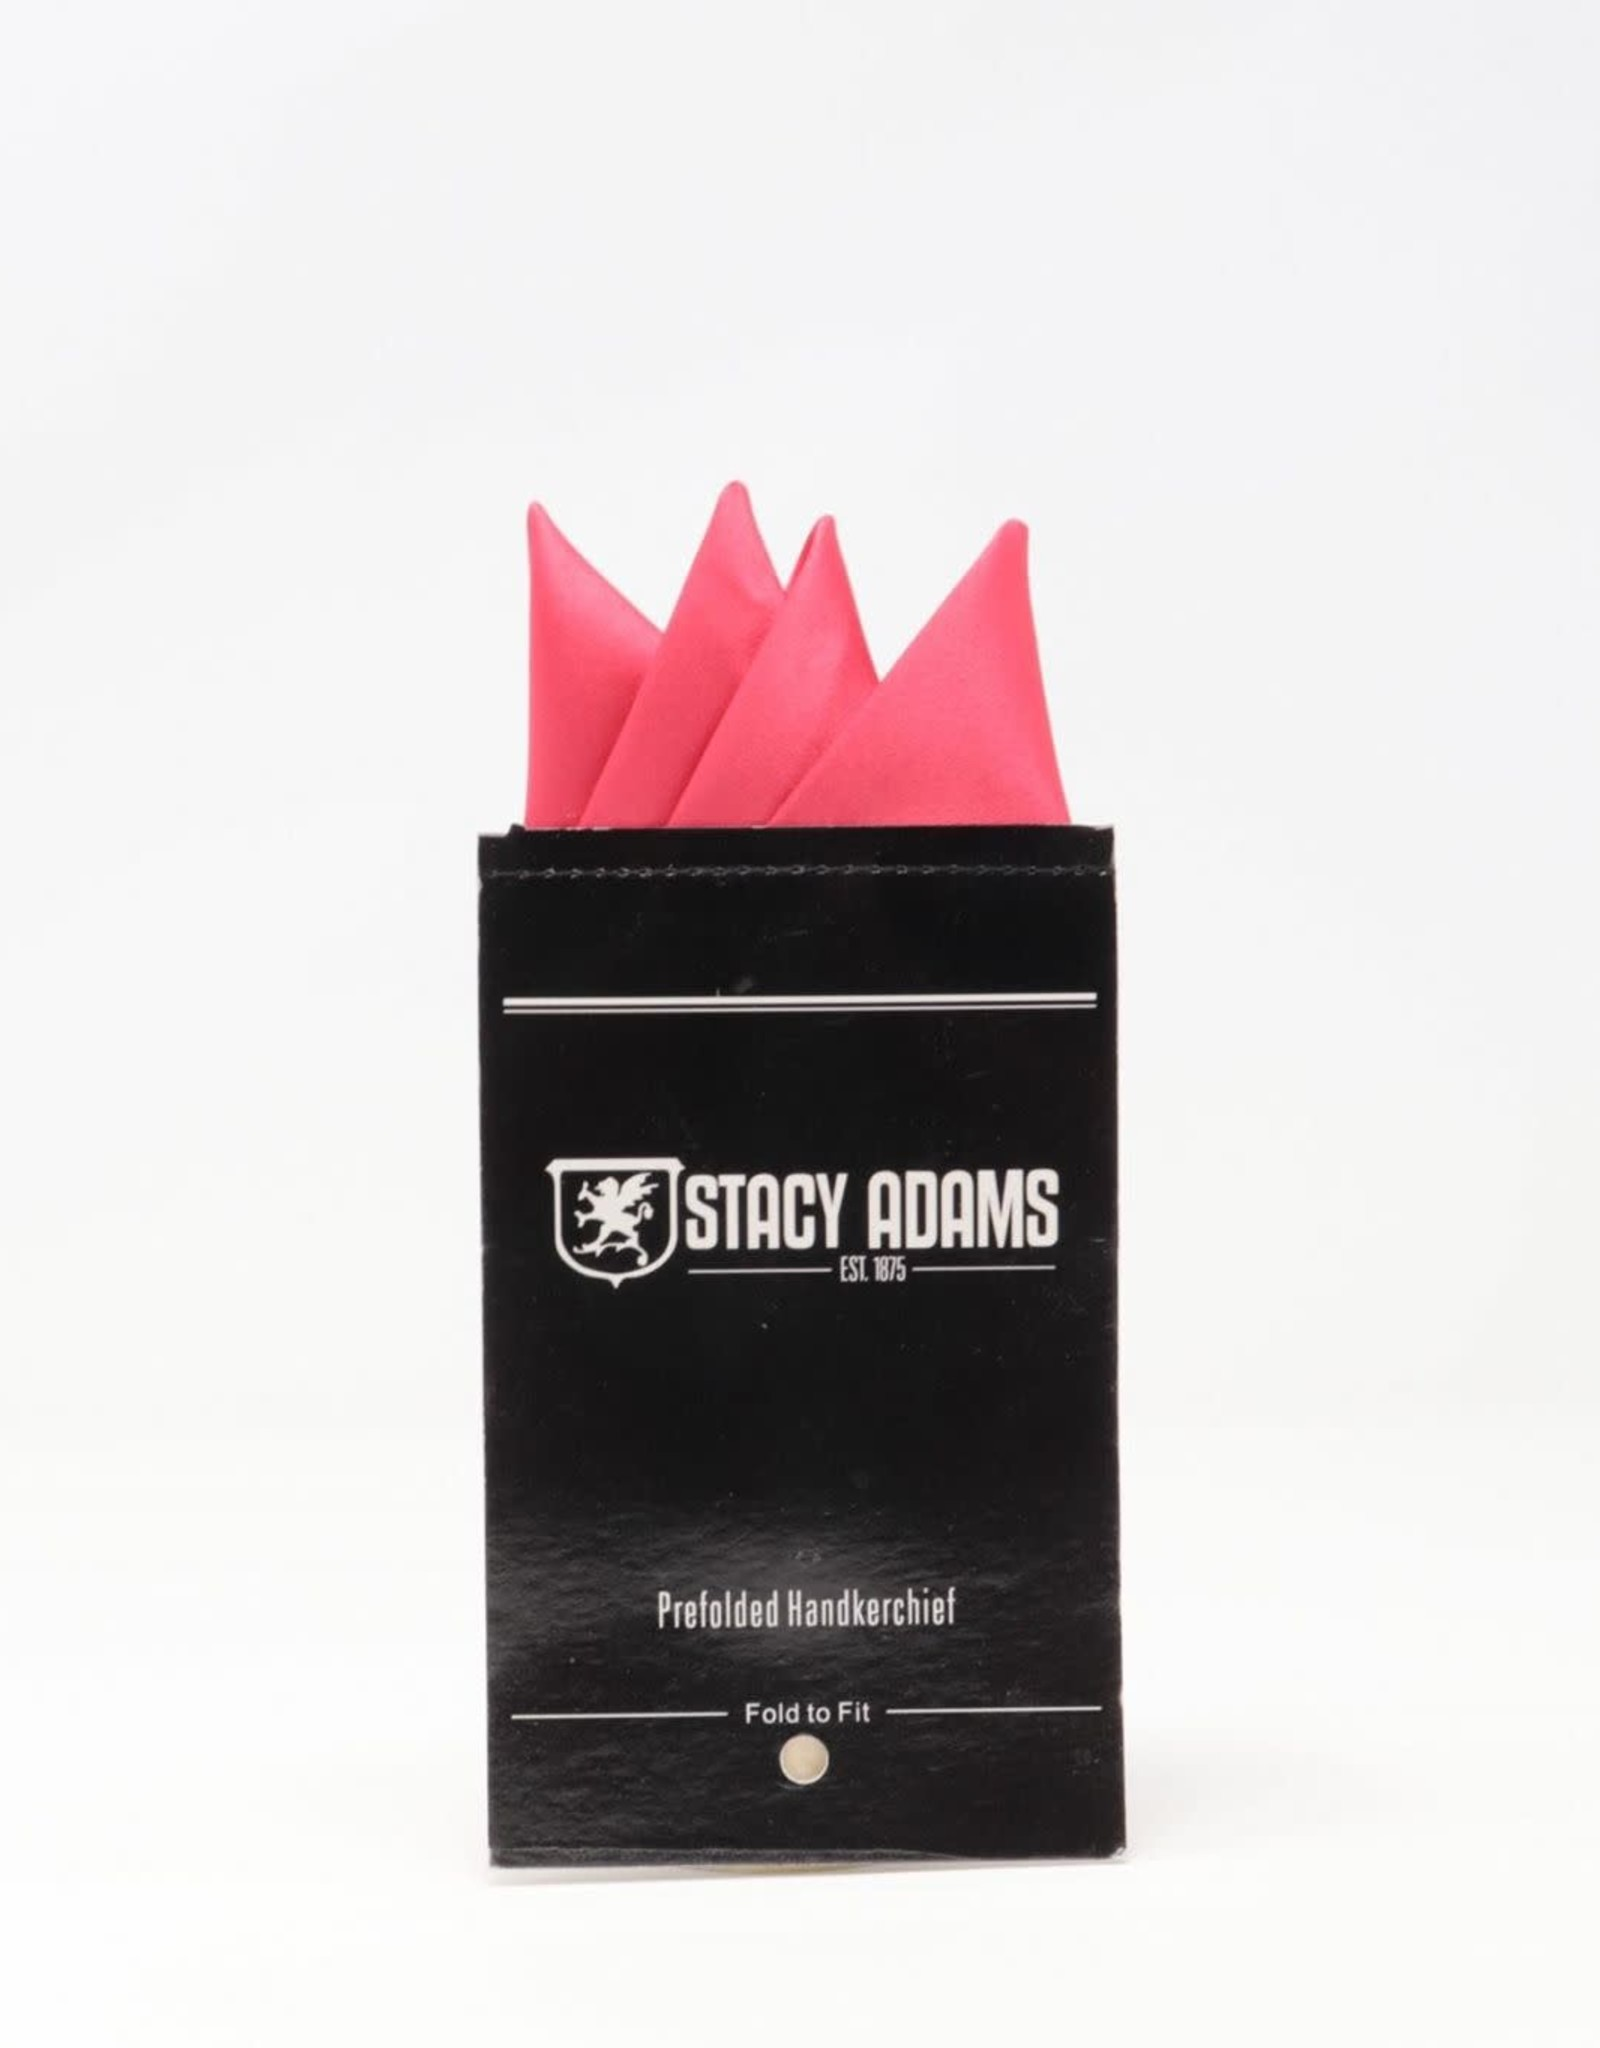 Stacy Adams Pocket Square Premade Stacy Adams Hot Pink #24